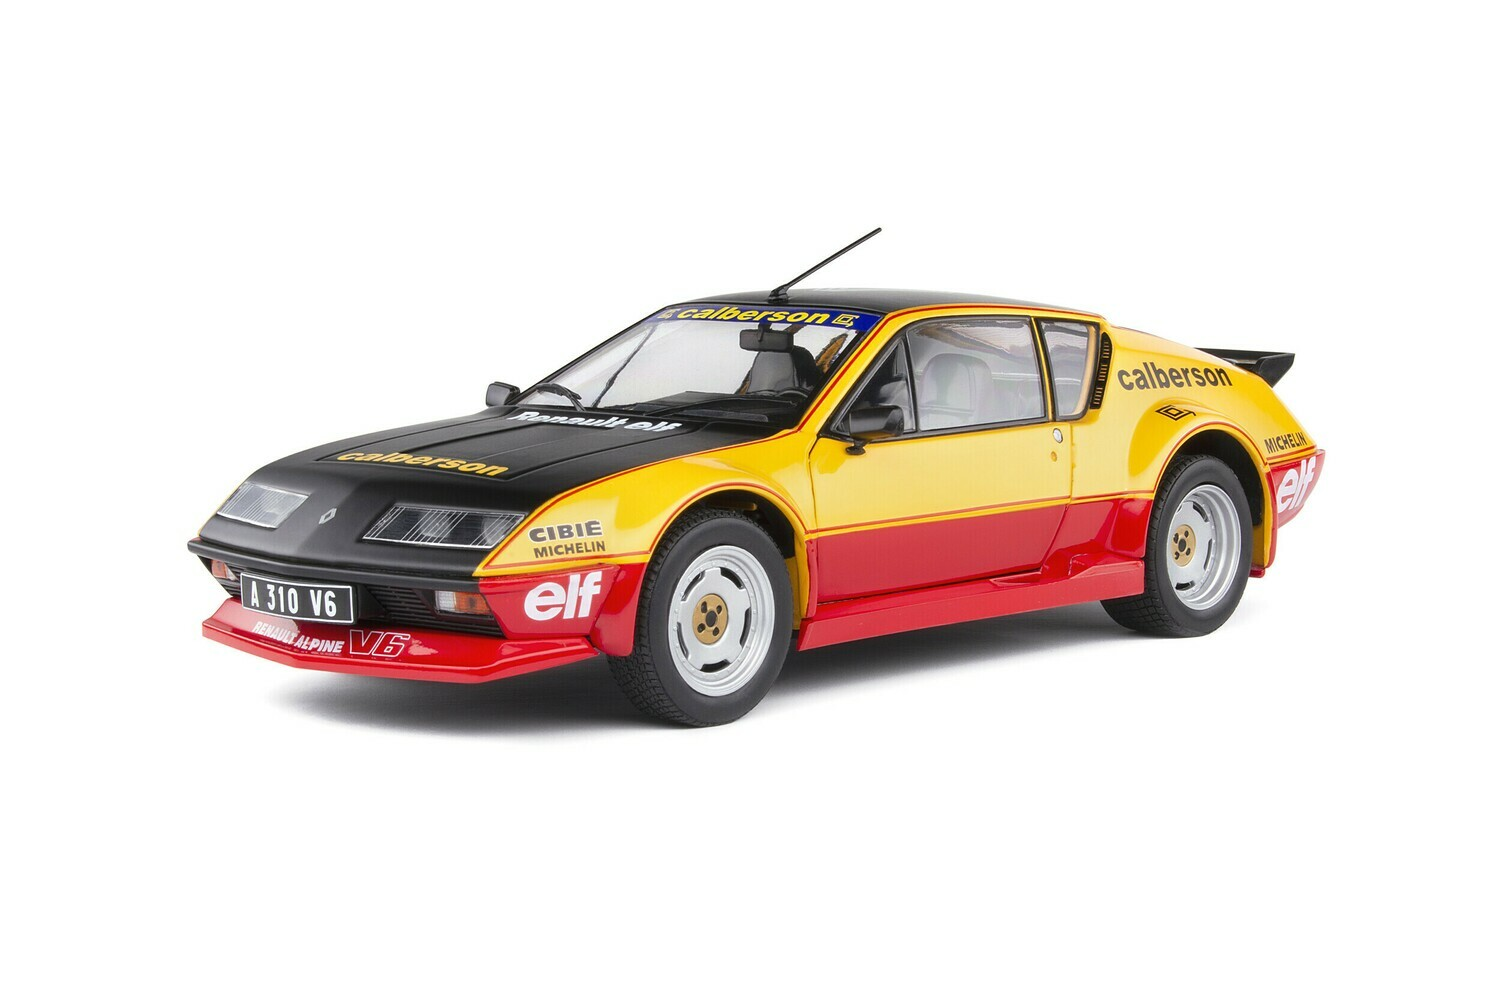 Alpine A310 Pack GT Calberson Evocation – 1983 - 1/18